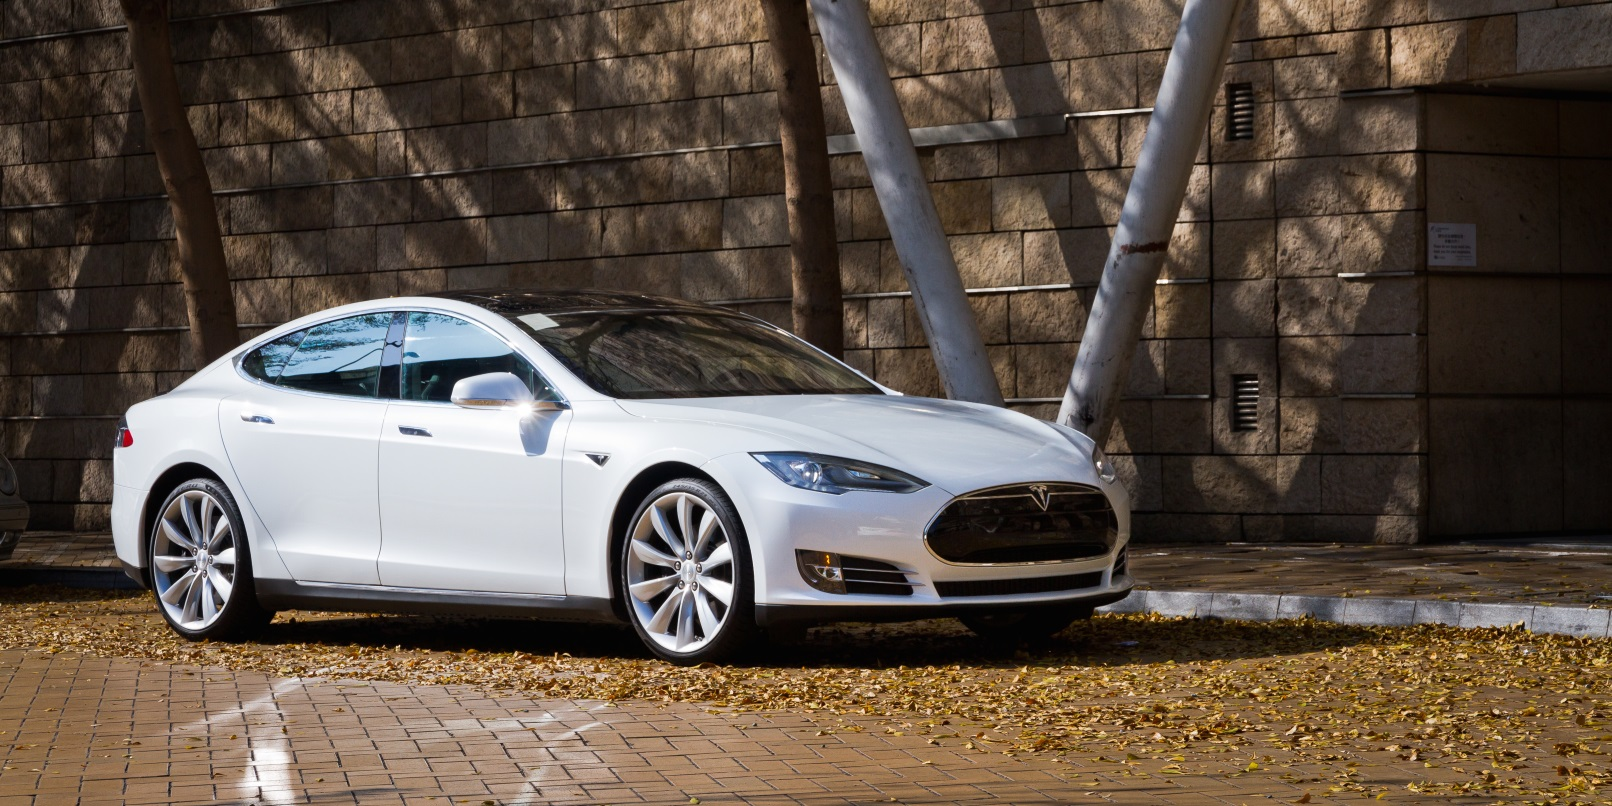 Elon Musk says Tesla's Model S doubles up as a boat